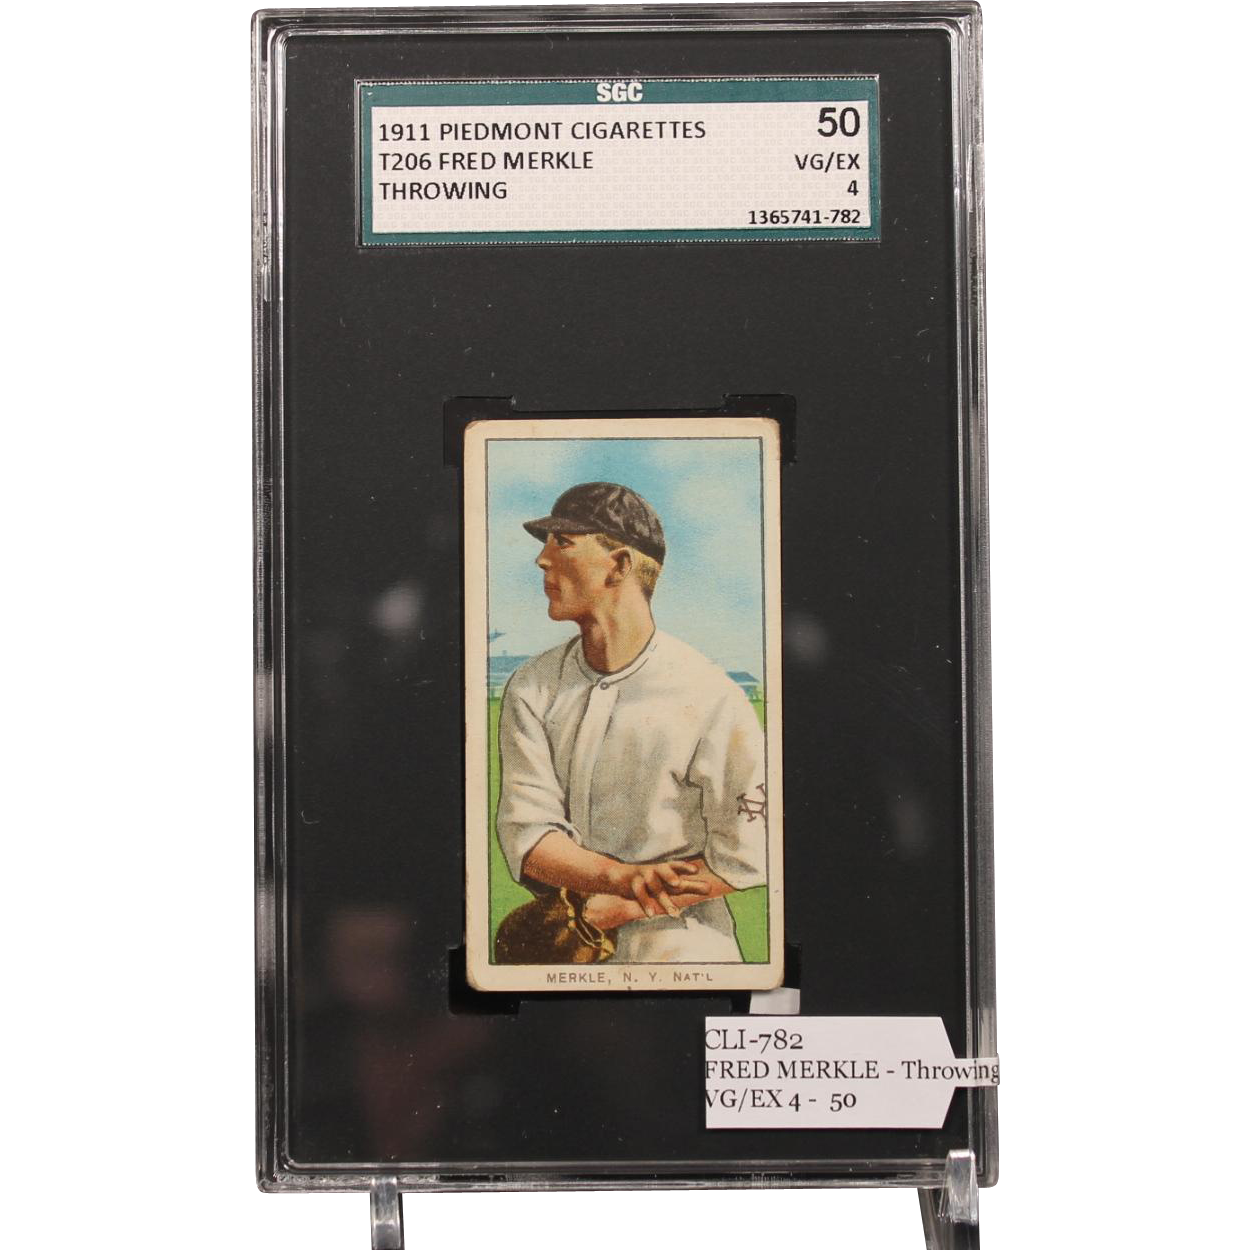 T206 FRED MERKLE - Throwing SGC grade 50 VG/EX 4